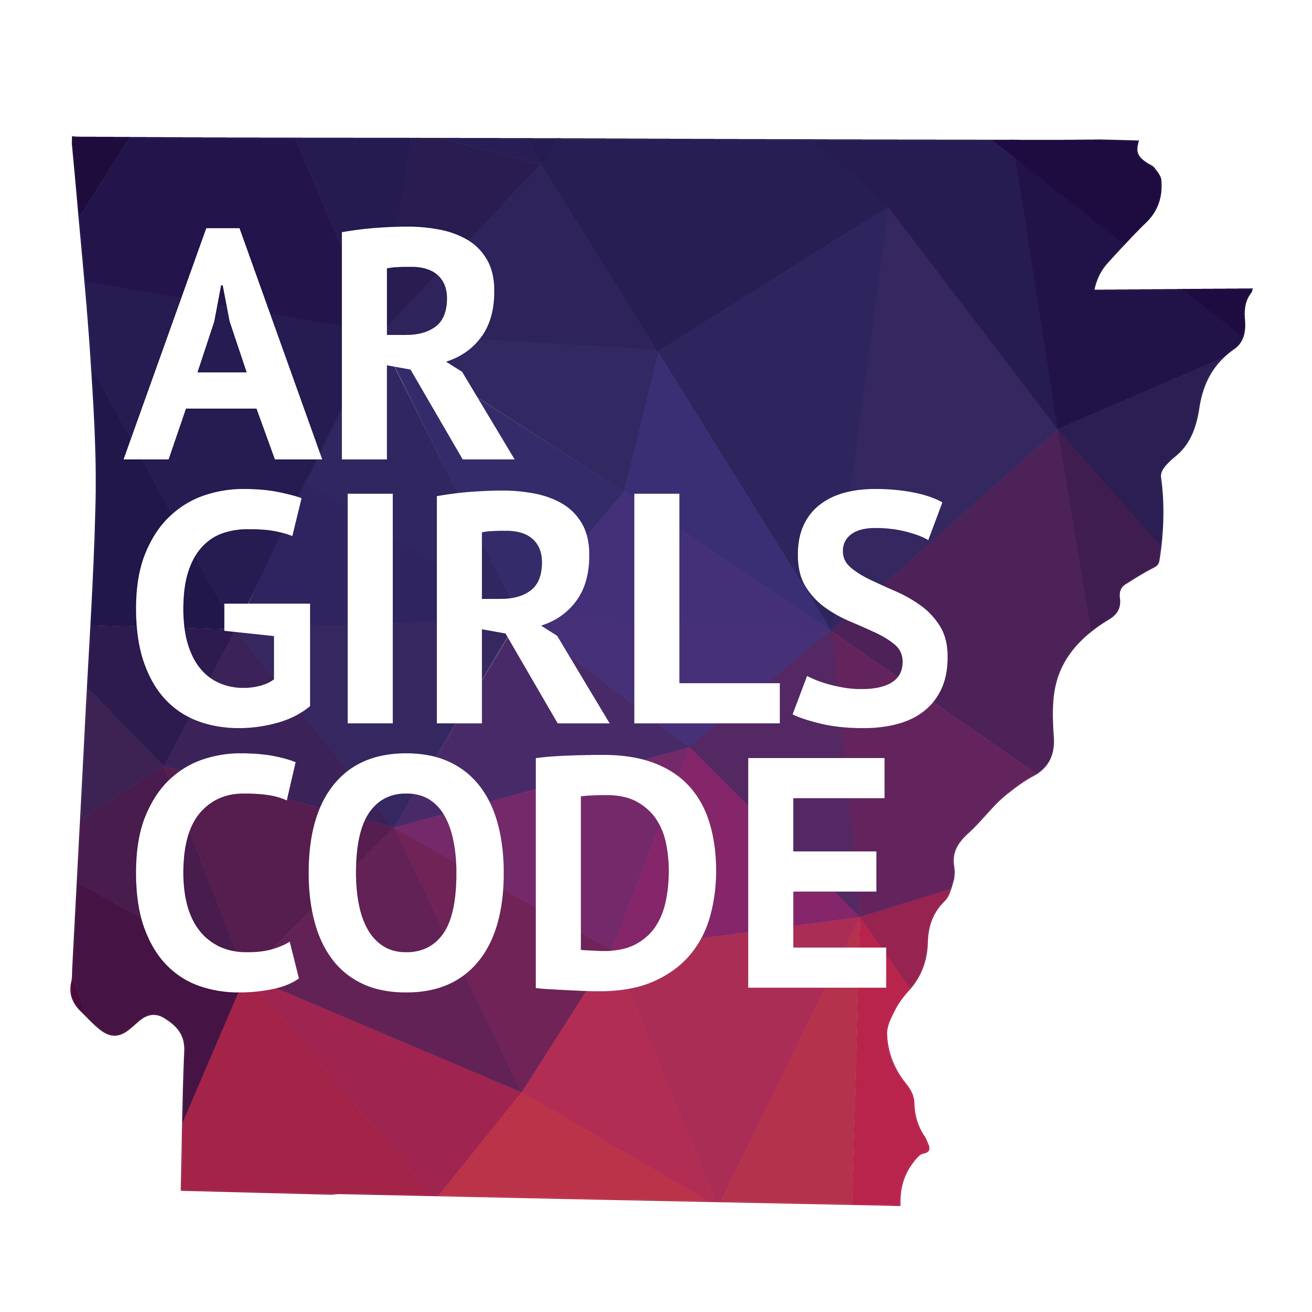 AR GIRLS CODE   AR Girls Code inspires young women to pursue a future in the STEM fields by providing free one-day workshops to girls ages 10 to 18 to teach the basics of HTML, CSS, and javascript. Girls not only learn technical skills that they can immediately apply but are enveloped in an environment that fosters relationships and builds a supportive community of other females interested in coding. We are the NWA Chapter of 100 Girls of Code.